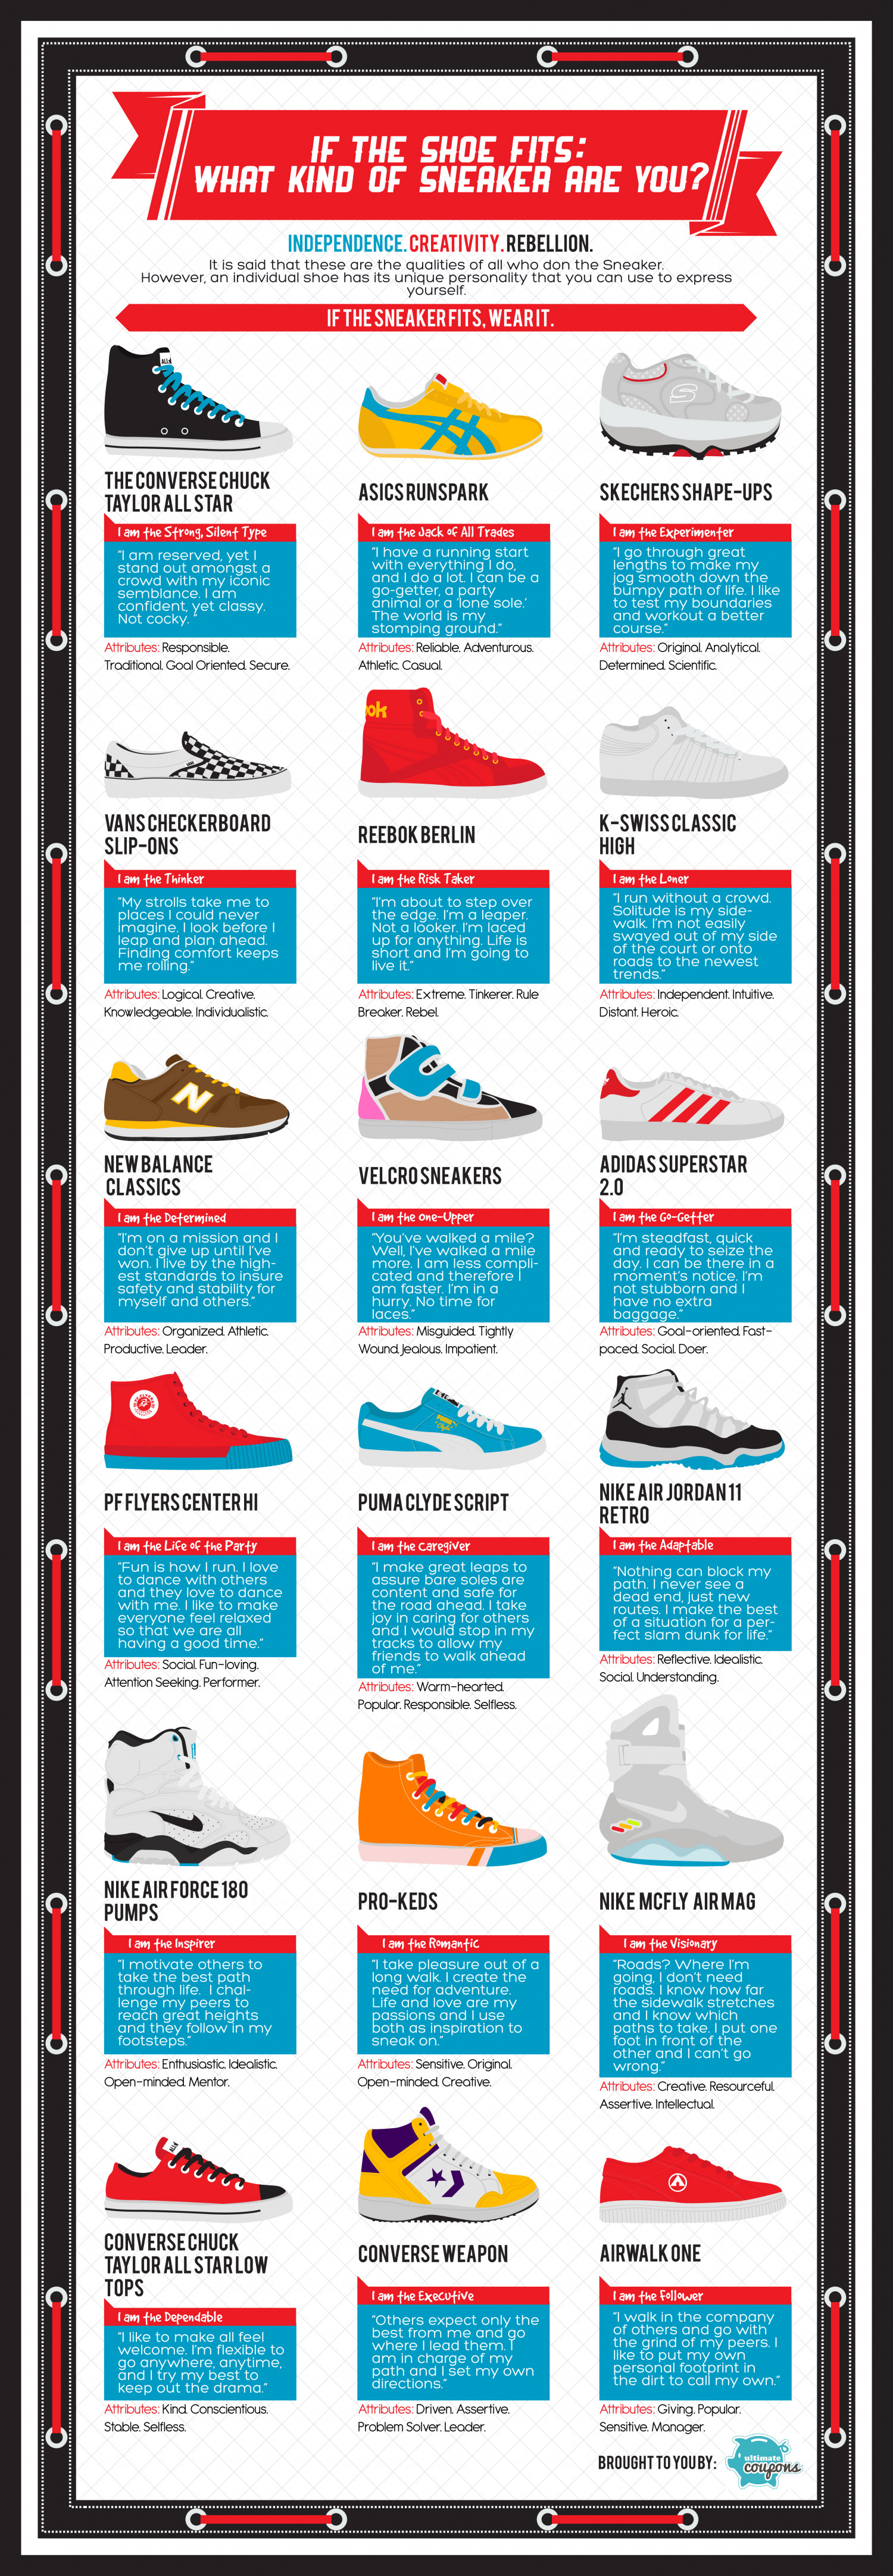 If The Shoe Fits: What Kind Of Sneaker Are You? Infographic